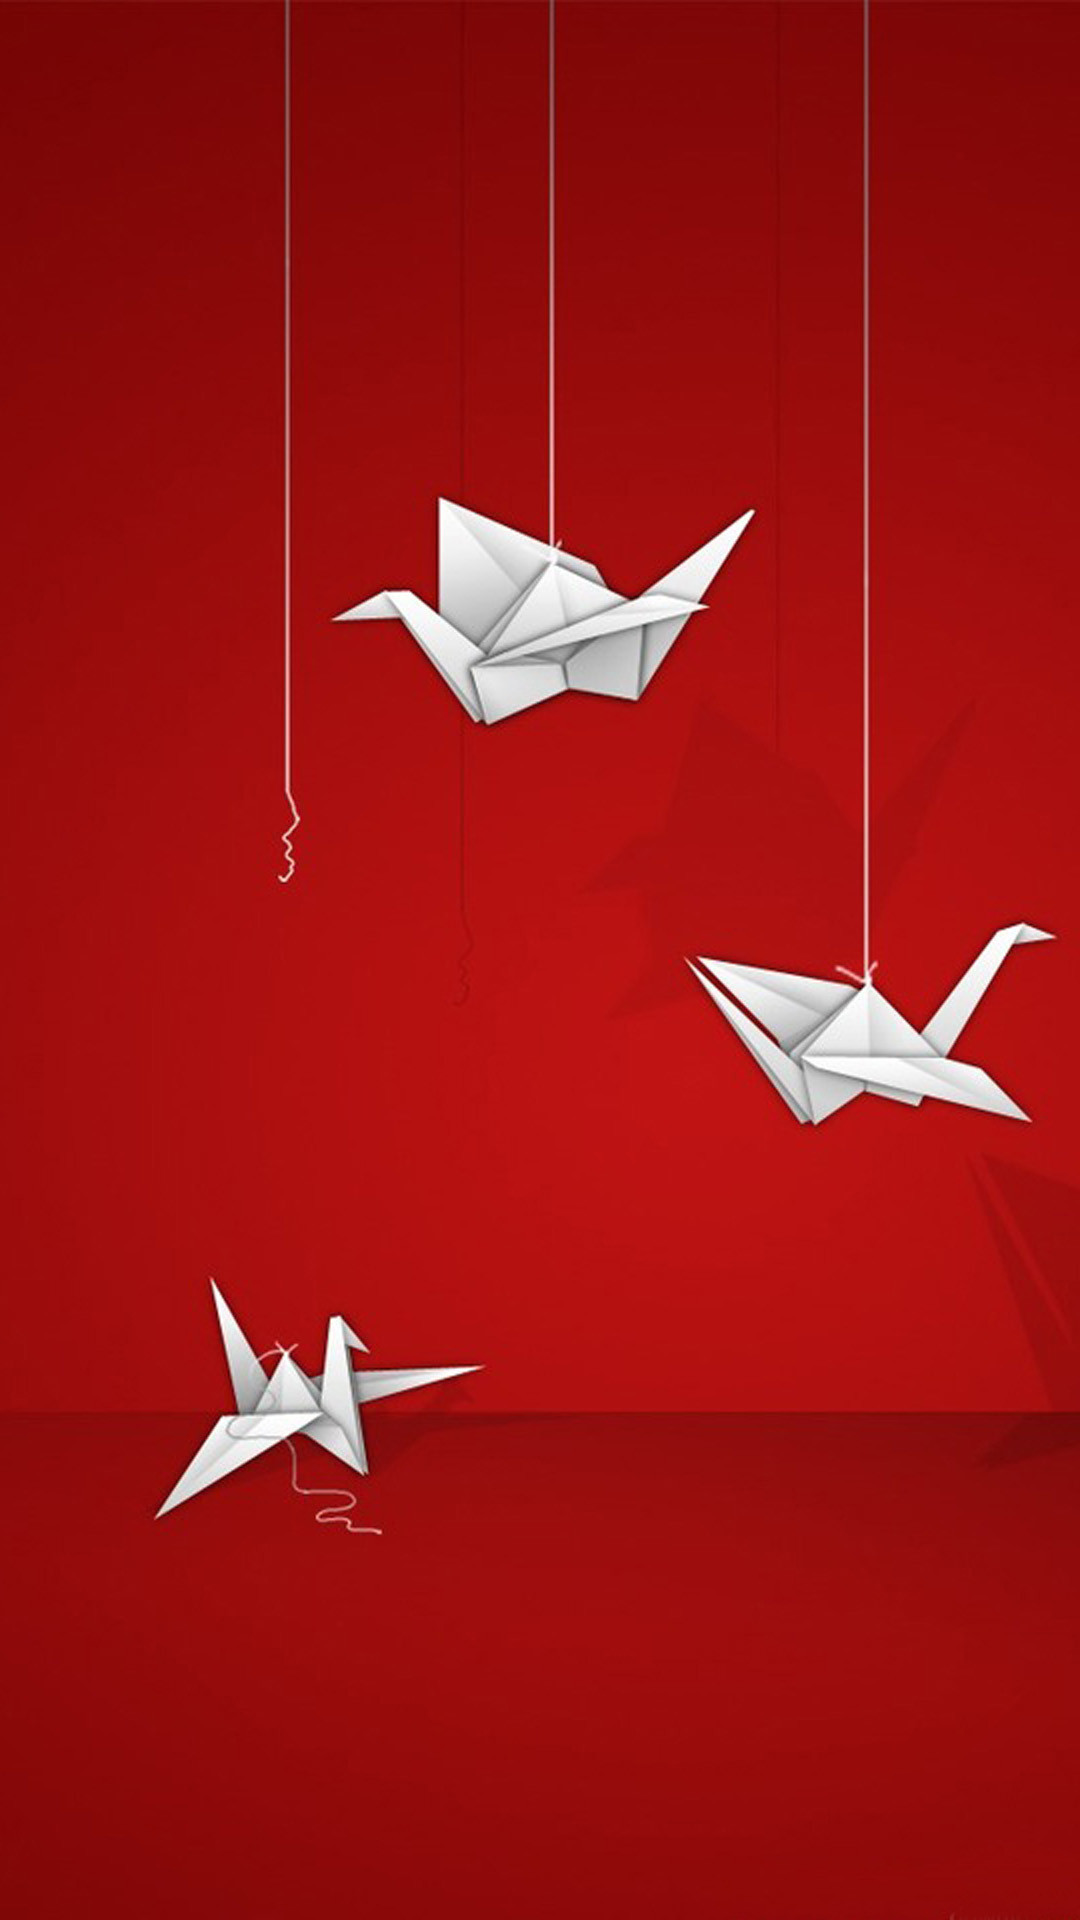 Background Origami cranes on a red HD Wallpaper iPhone 6 plus